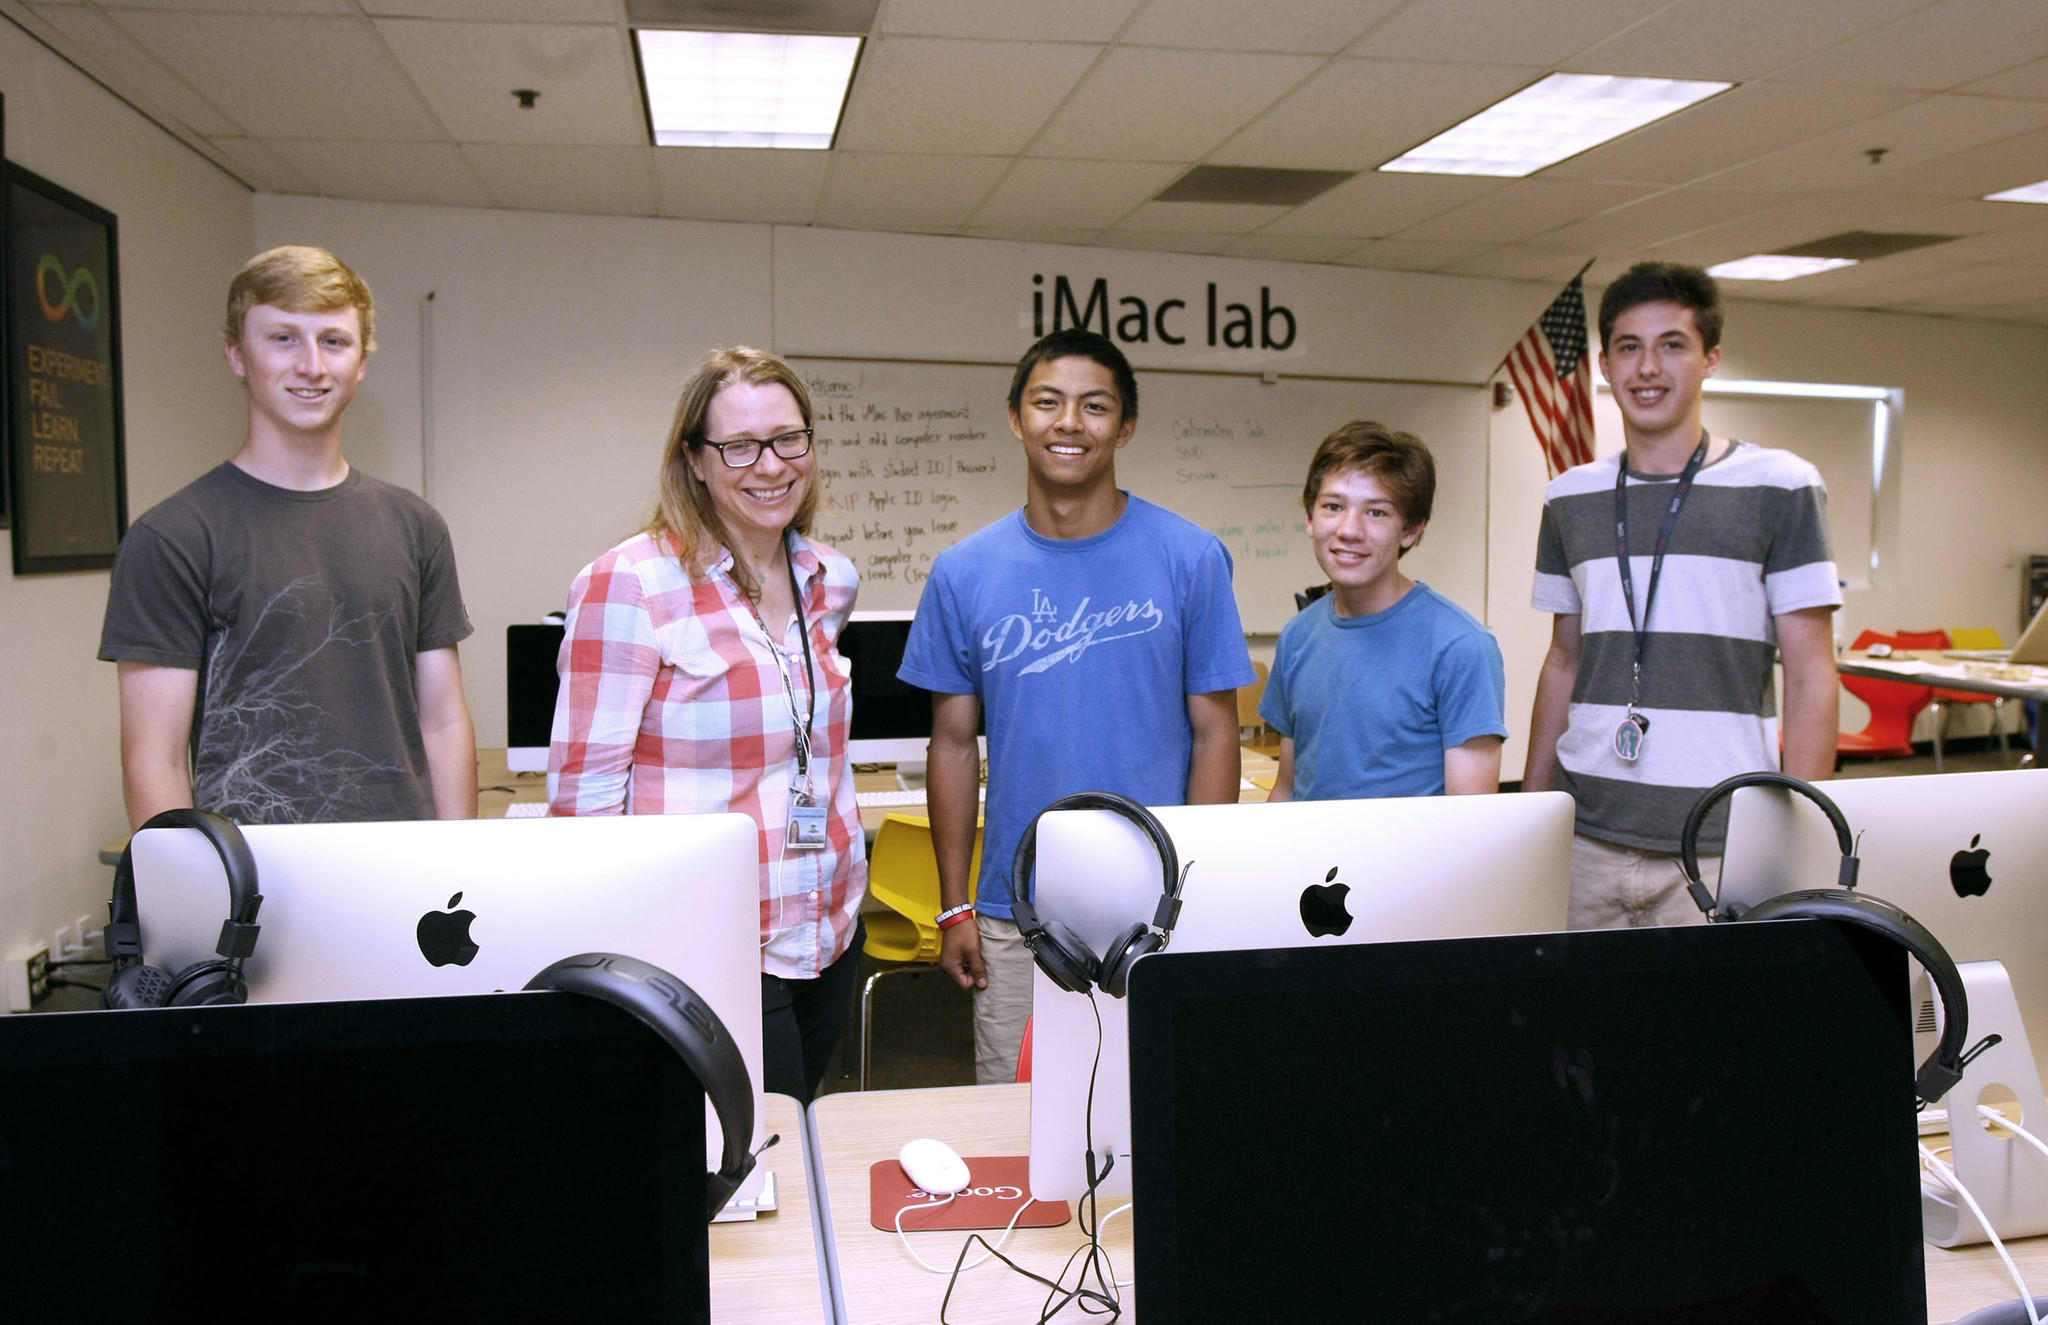 Some members of the La Cañada High School iTeam club include, left to right, Clay Massimino, adviser Jamie Lewsadder, Matthew Pasion, Braden Oh and club president Jonathan Connelly, at the iMac lab on campus on Tuesday, April 14, 2014.